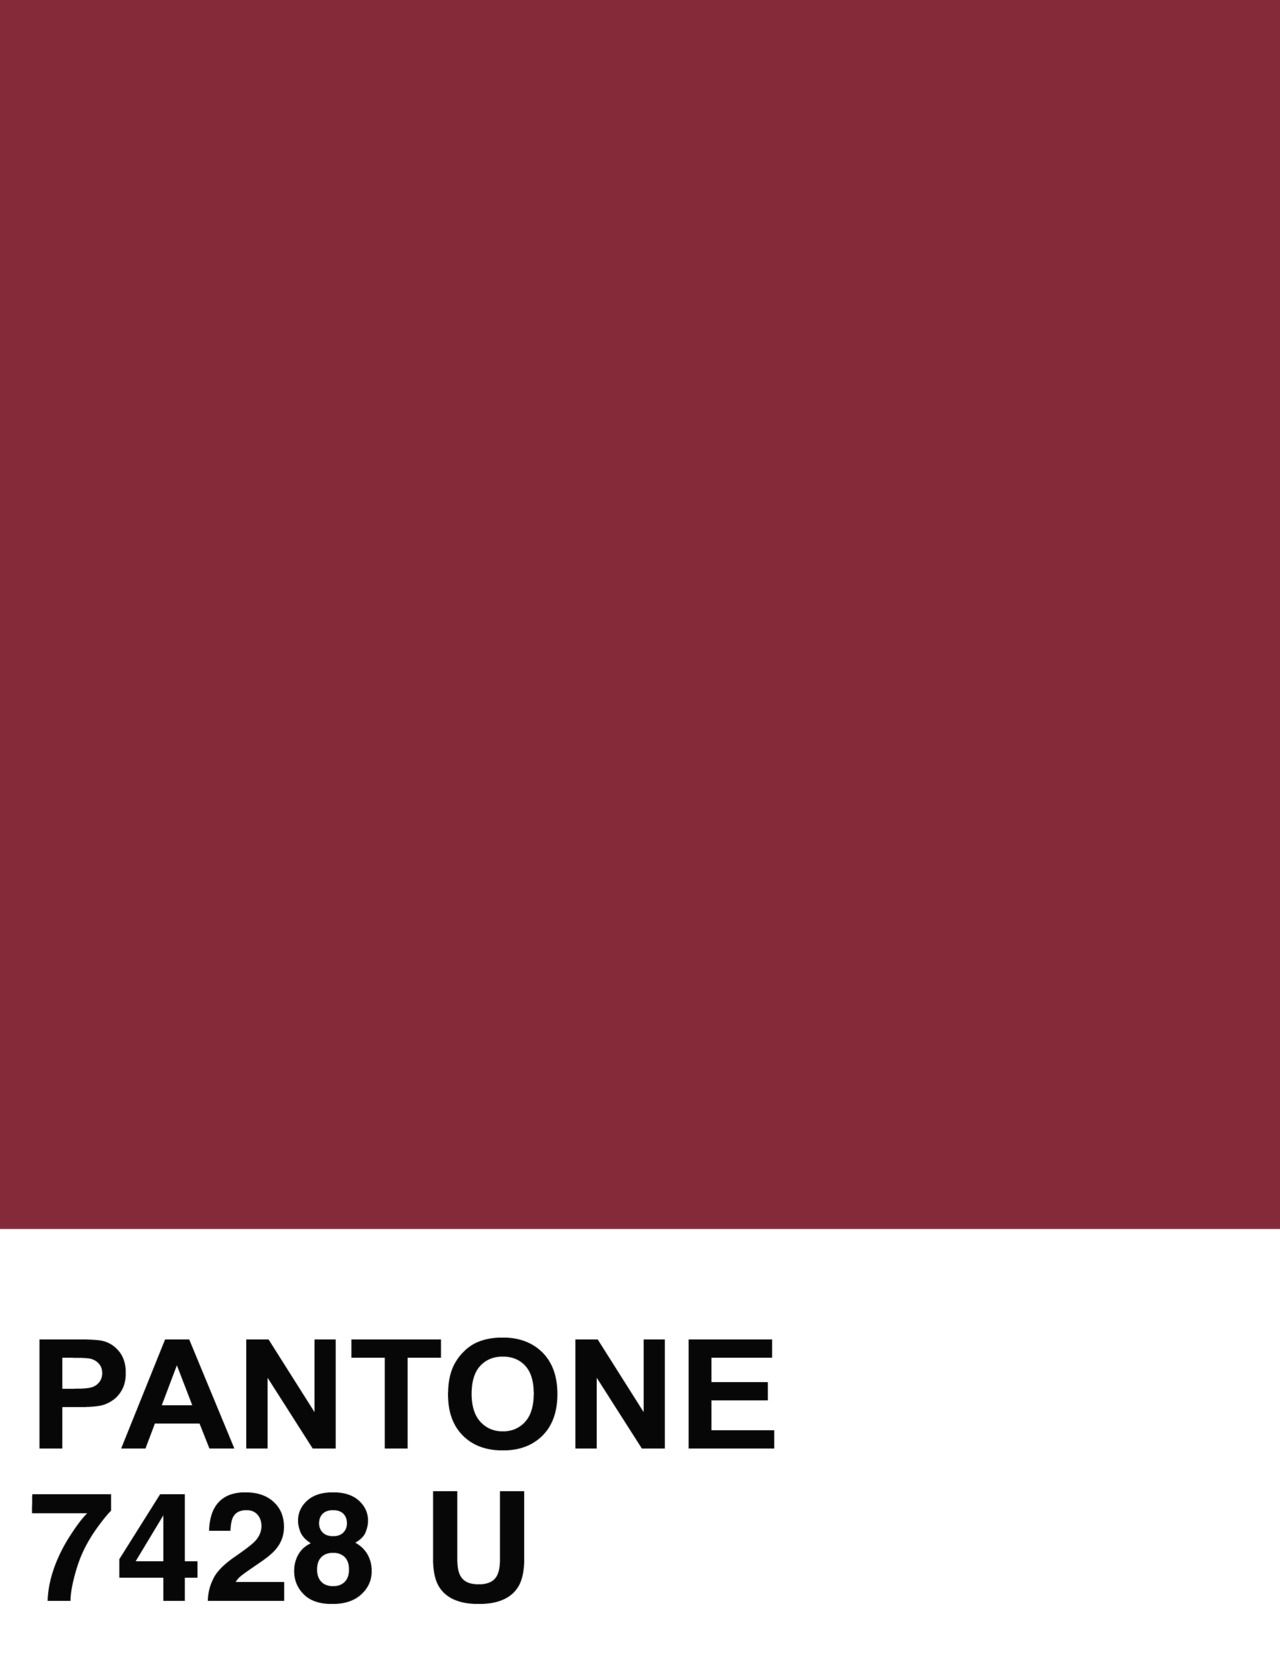 Pantone solid uncoated photo pantone pinterest pantone pantone solid uncoated color swatches for week love this color inspiration geenschuldenfo Choice Image